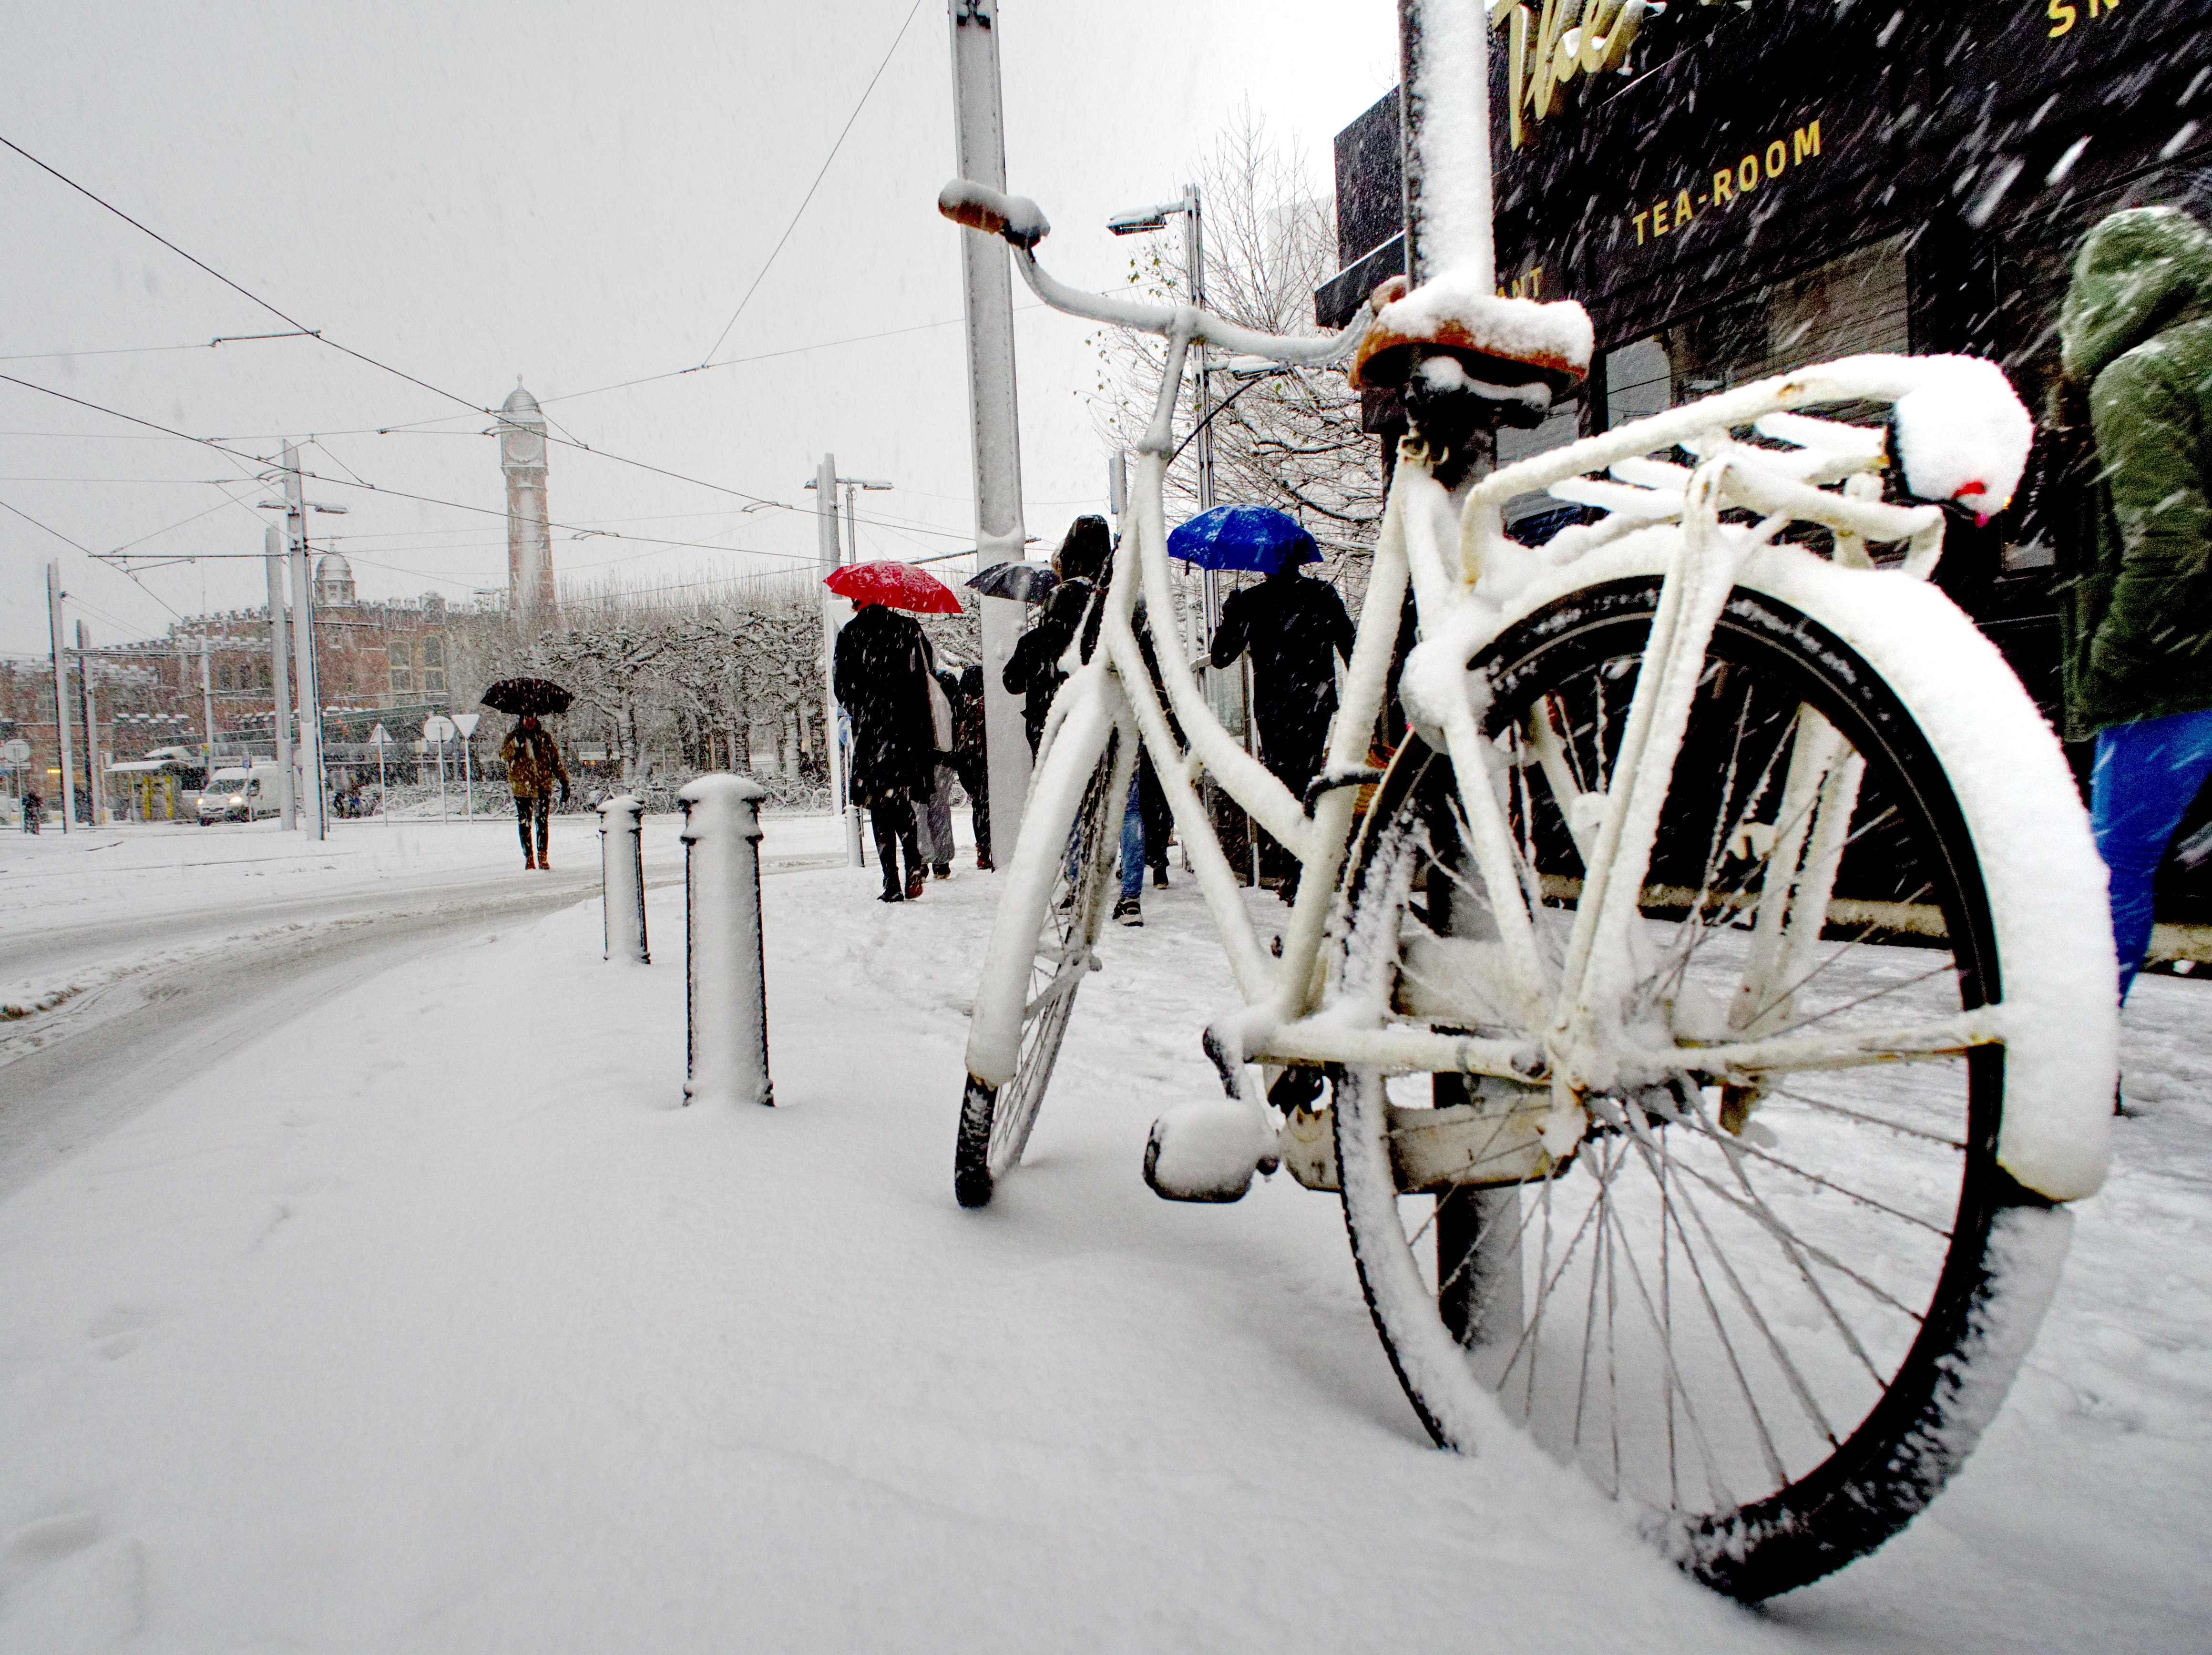 White City Bike Cover With Snow, Bicycle, Sport, Wheel, Walking, HQ Photo